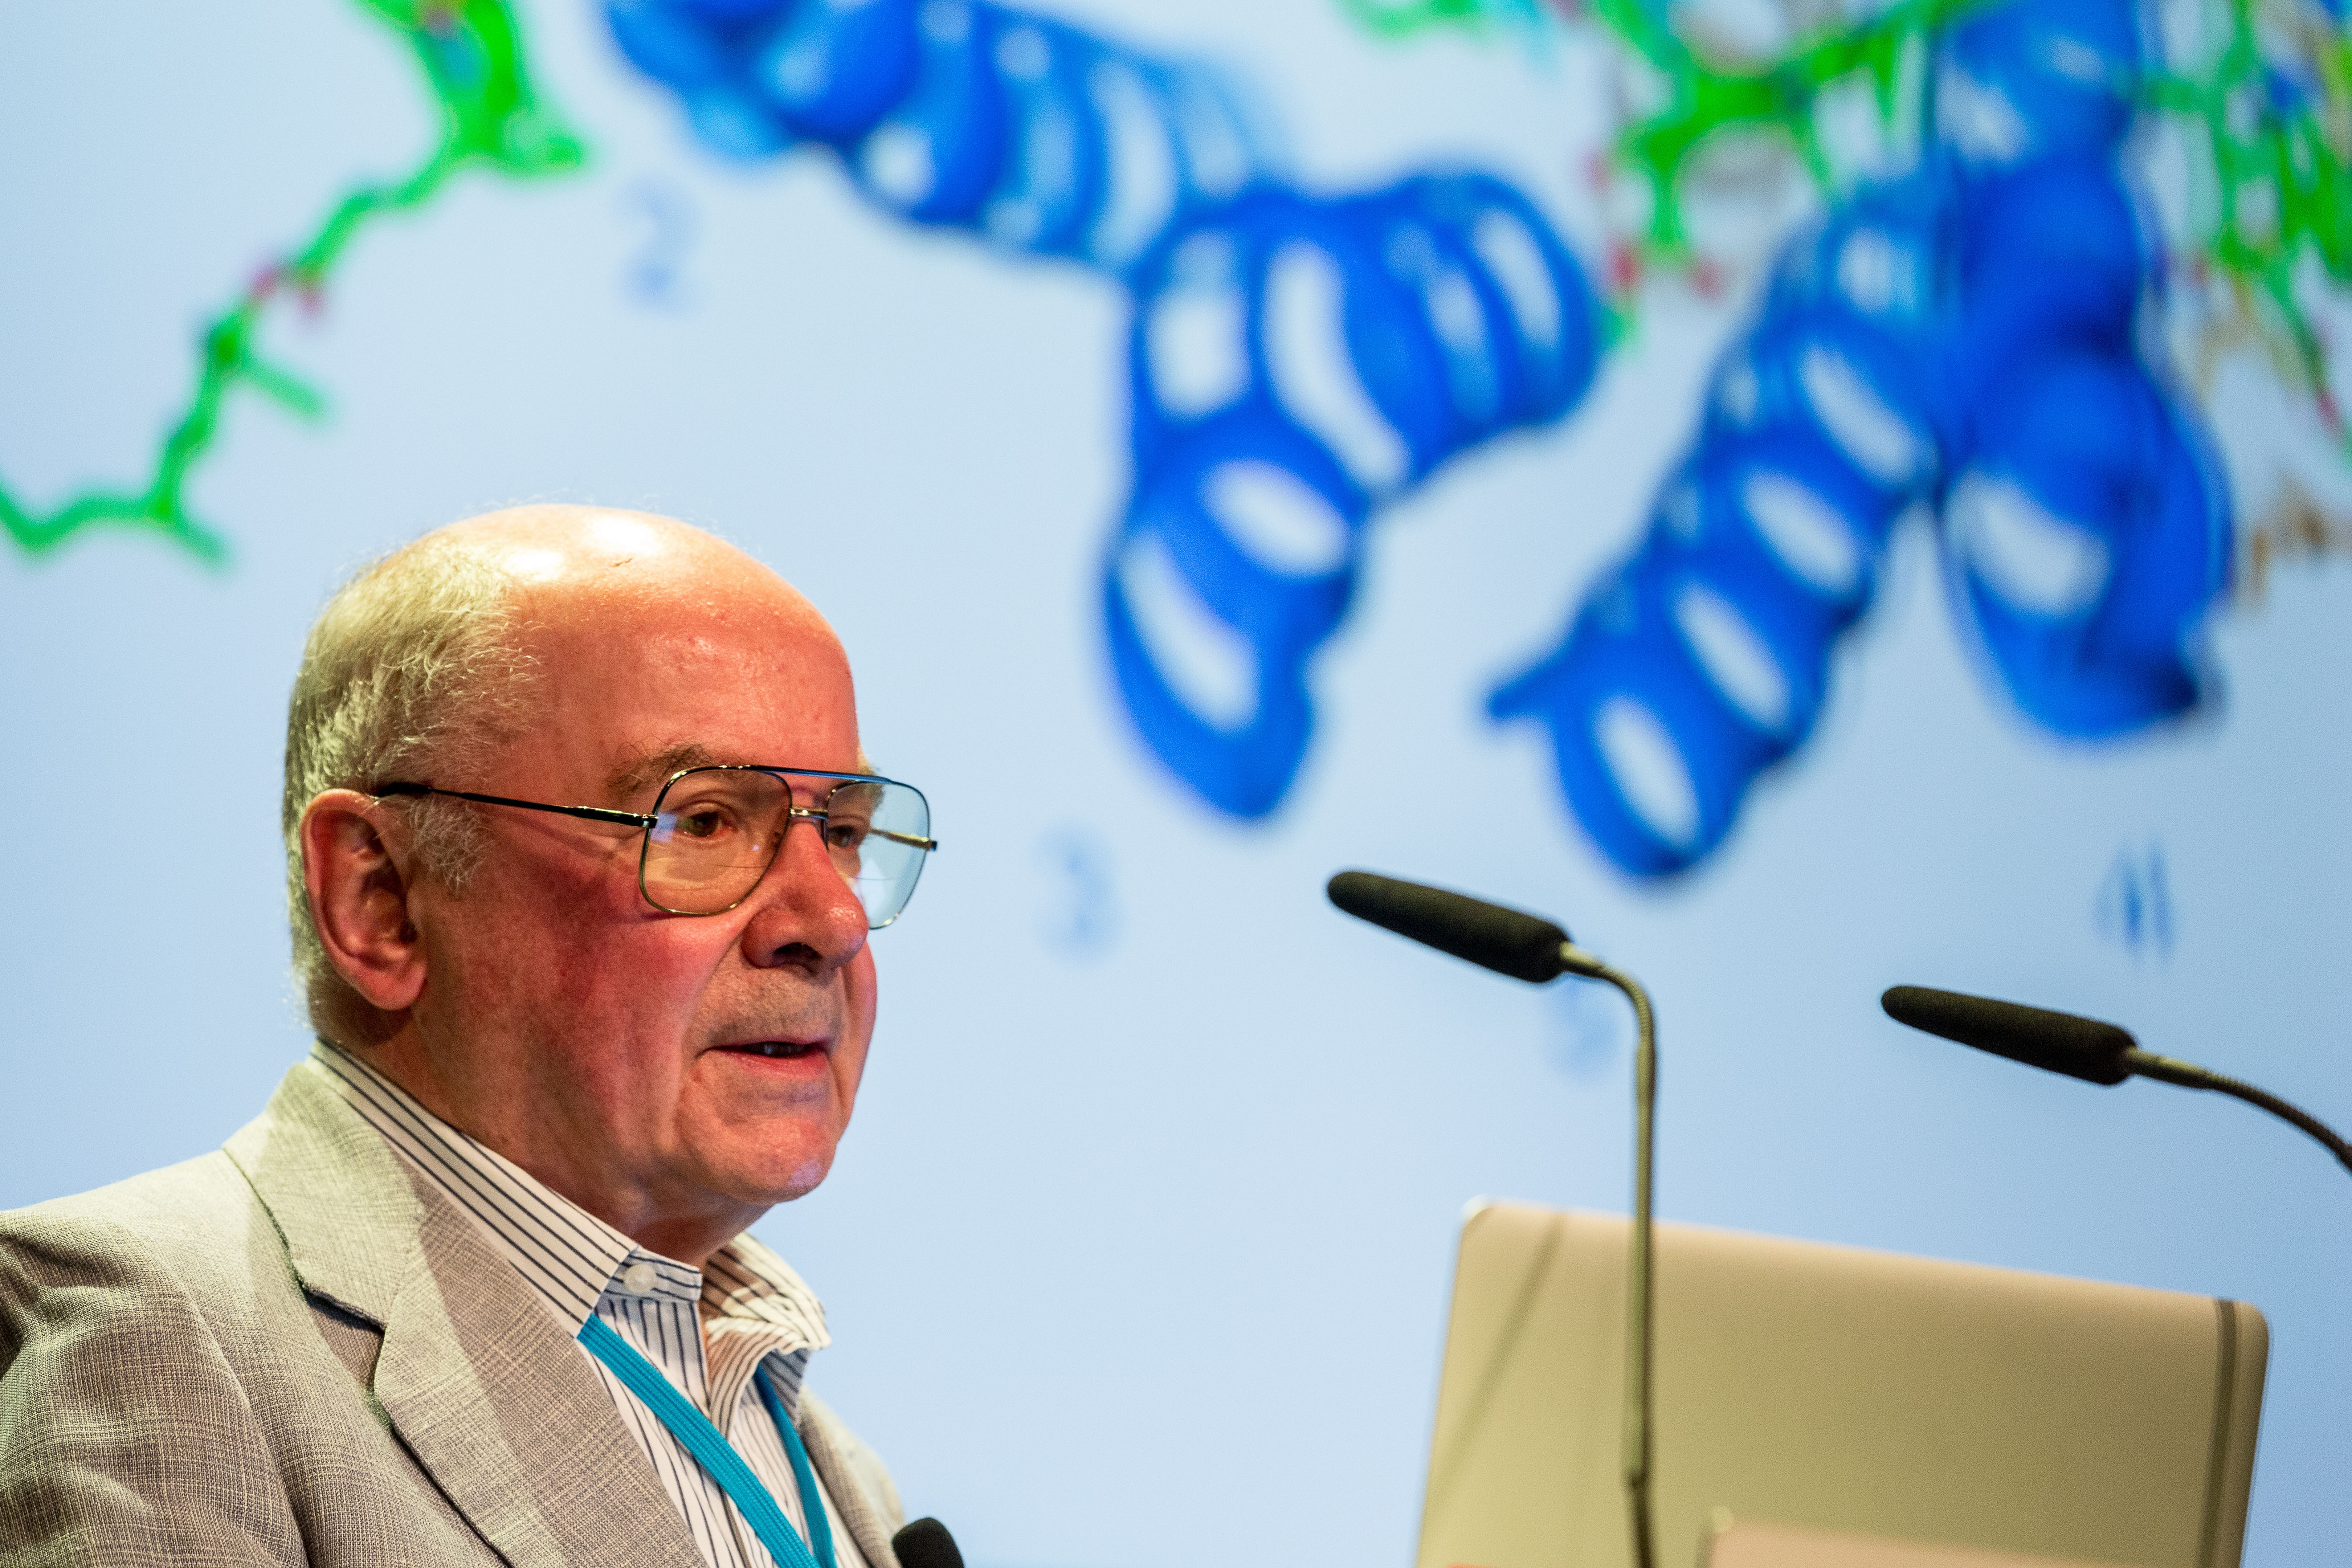 Johann Deisenhofer during his 2016 Lindau Lecture. We are looking forward to his lecture at #LiNo17! Credit: Christian Flemming/LNLM